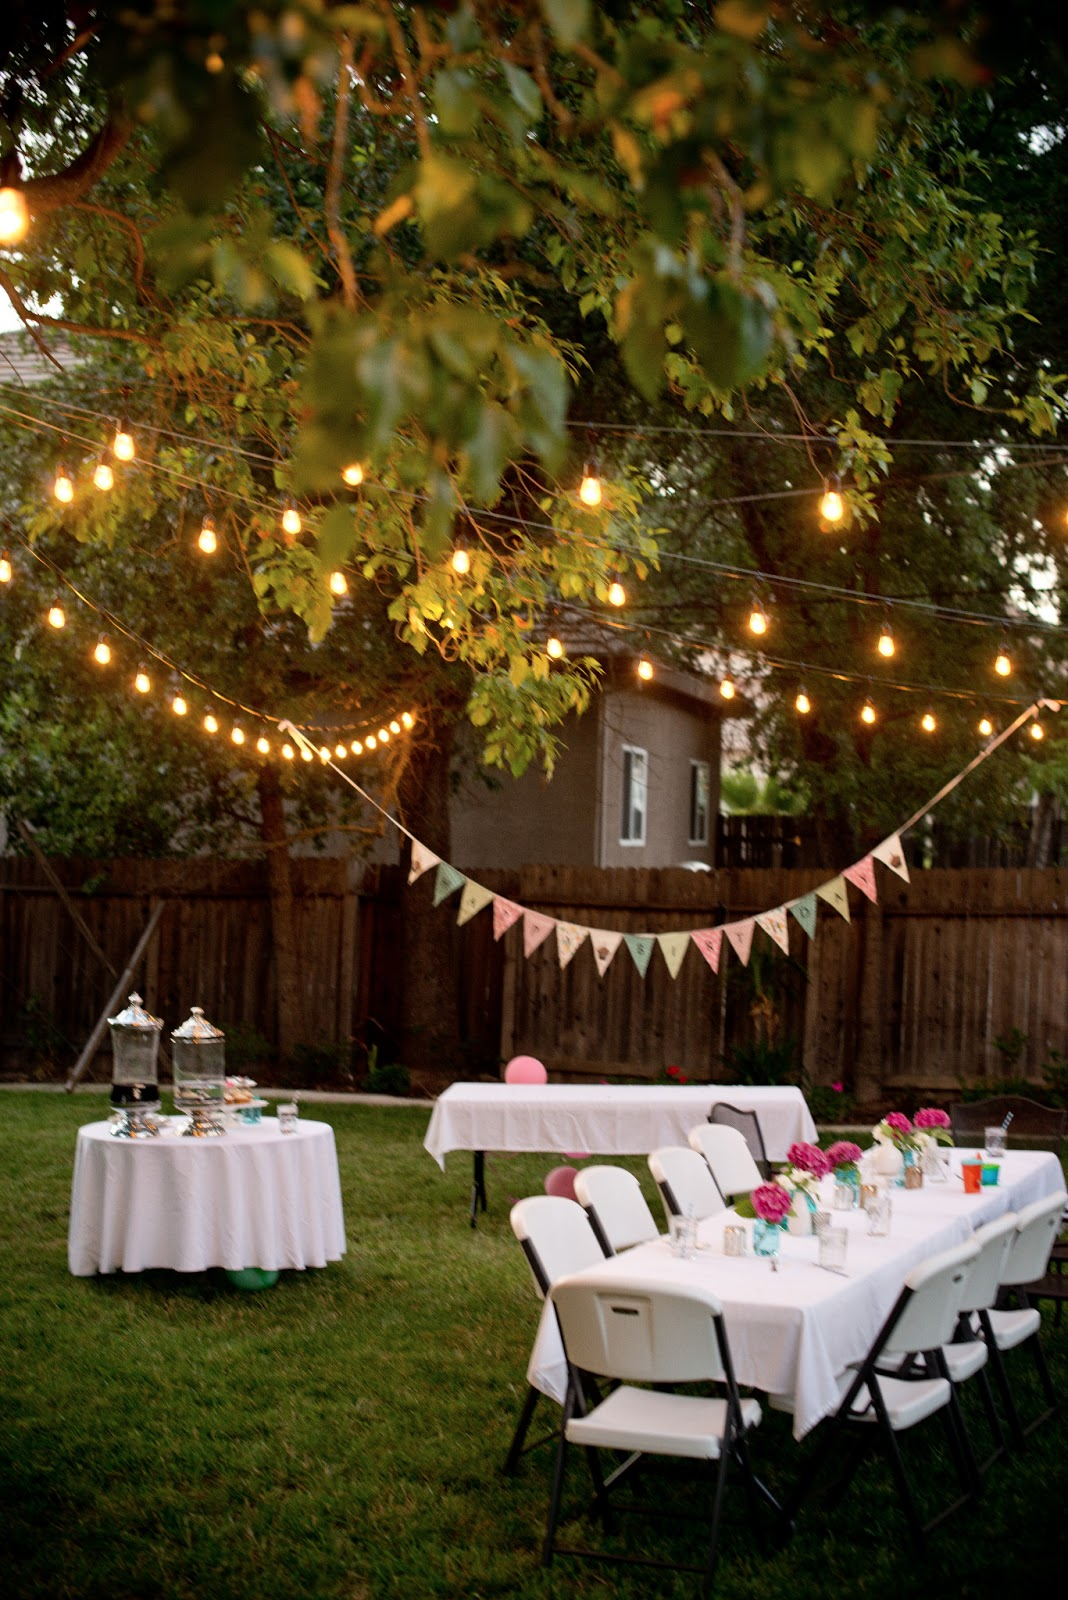 Lighting For Backyard Party : Domestic Fashionista Backyard Birthday FunPink Hydrangeas + Polka